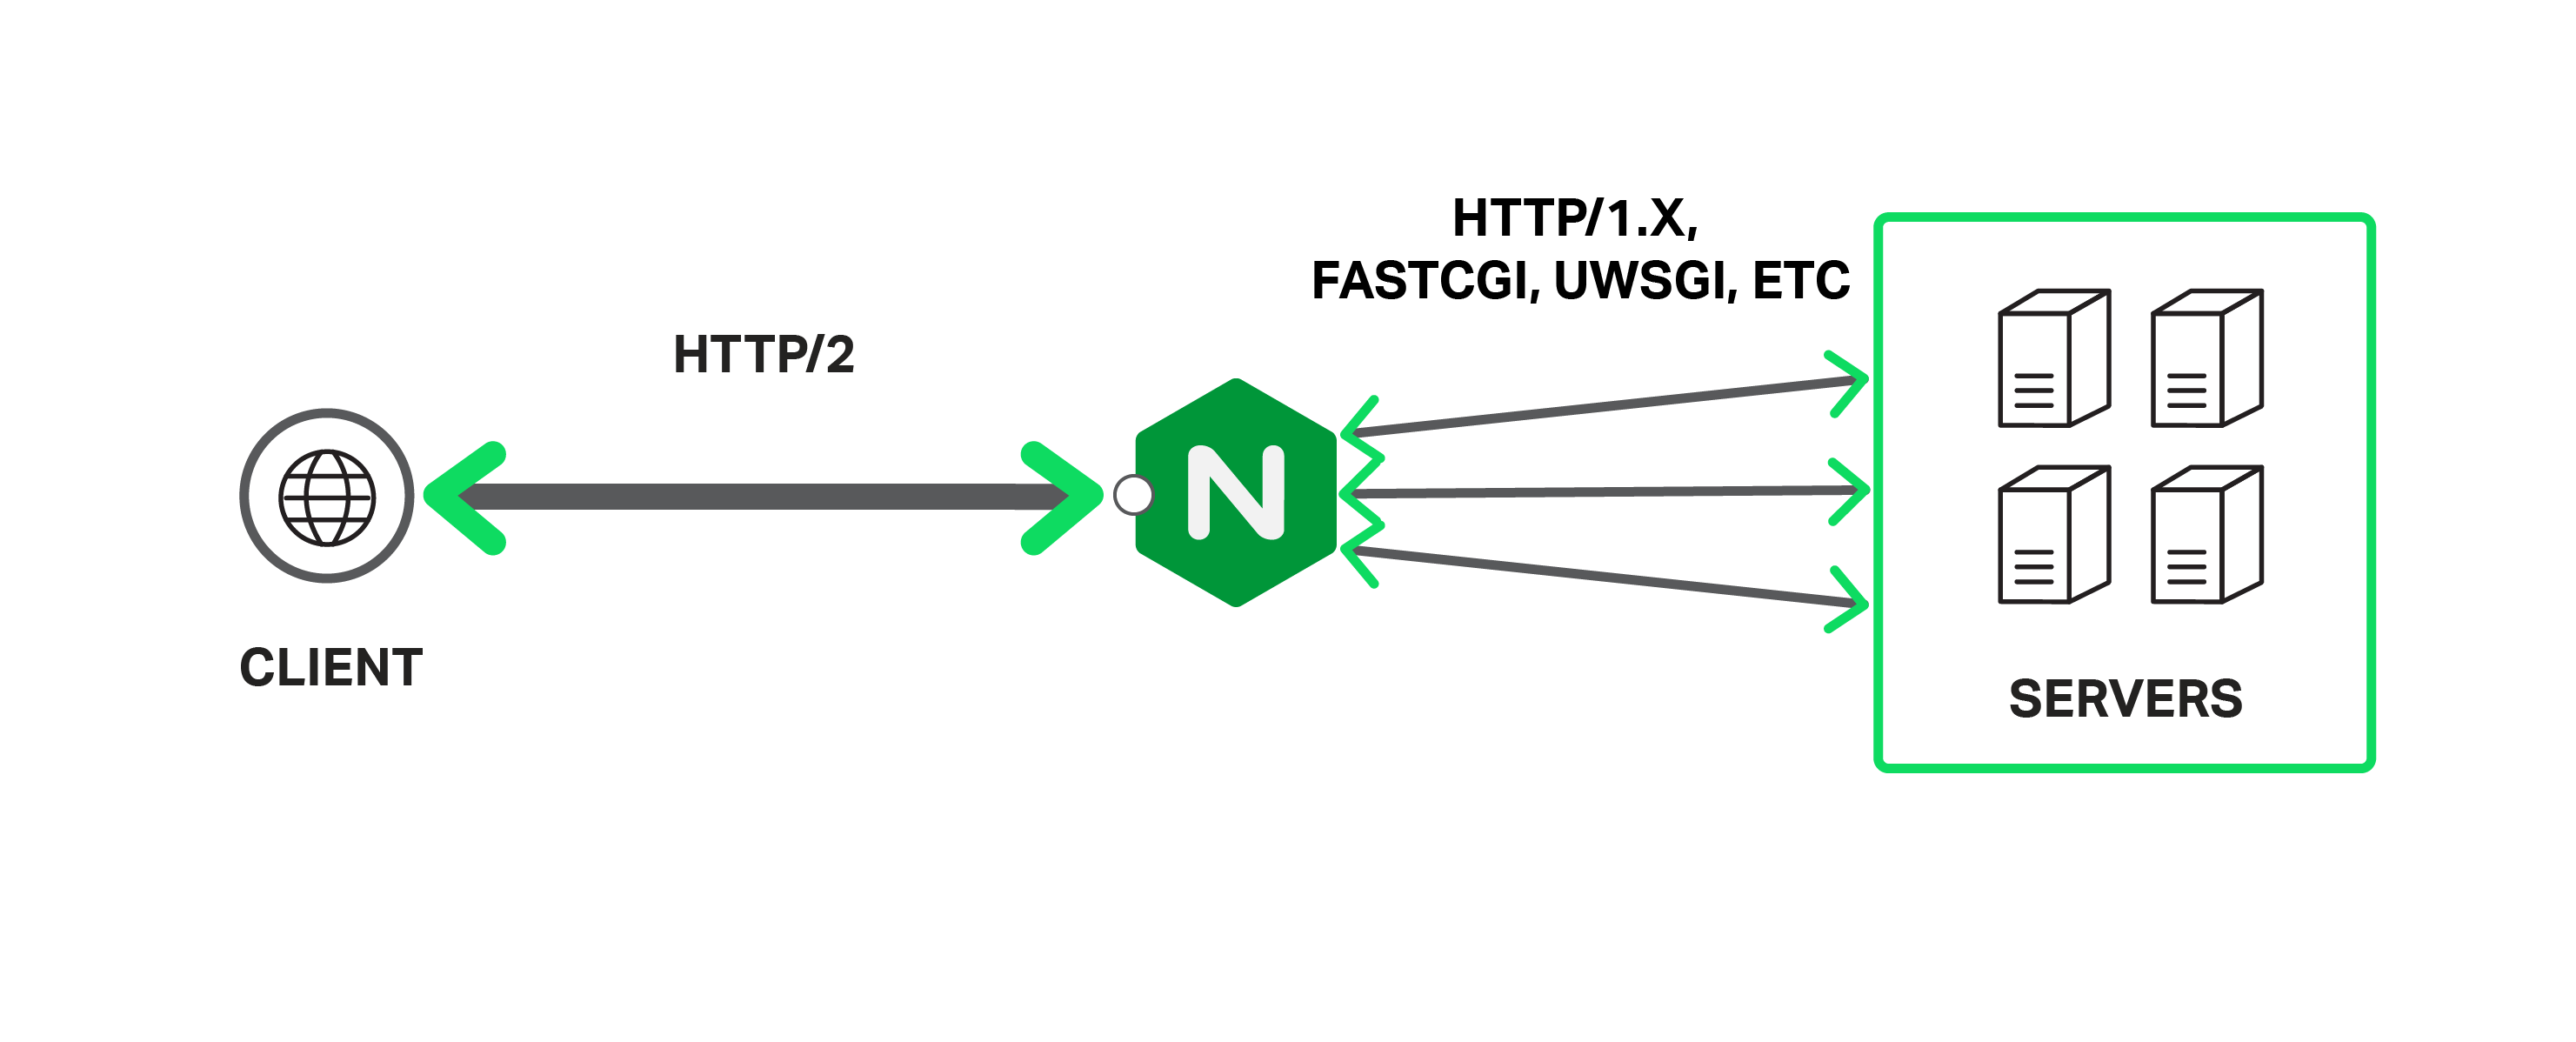 NGINX Supports SPDY and HTTP/2 for increased web application performance